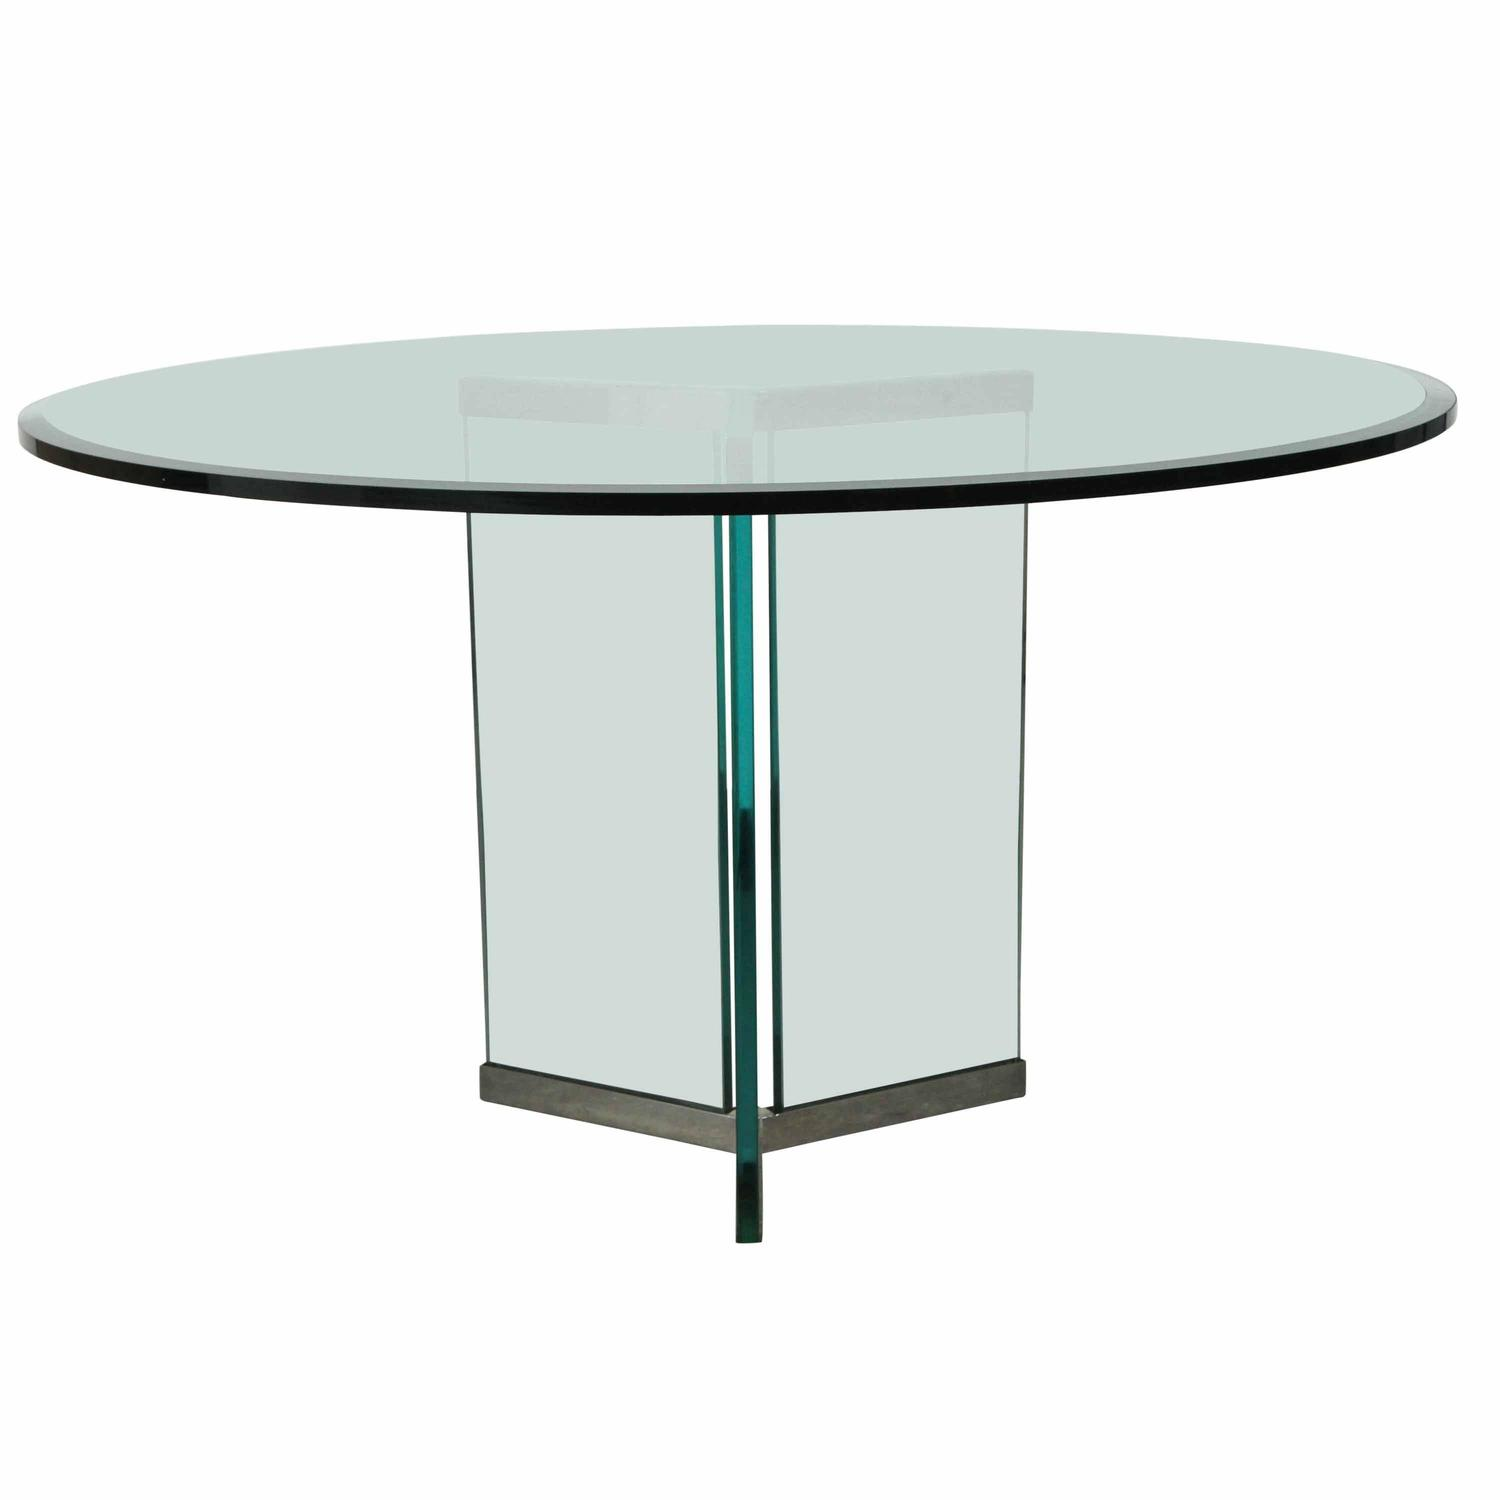 Triangular base dining table by pace for sale at 1stdibs for Triangle shaped dining room table